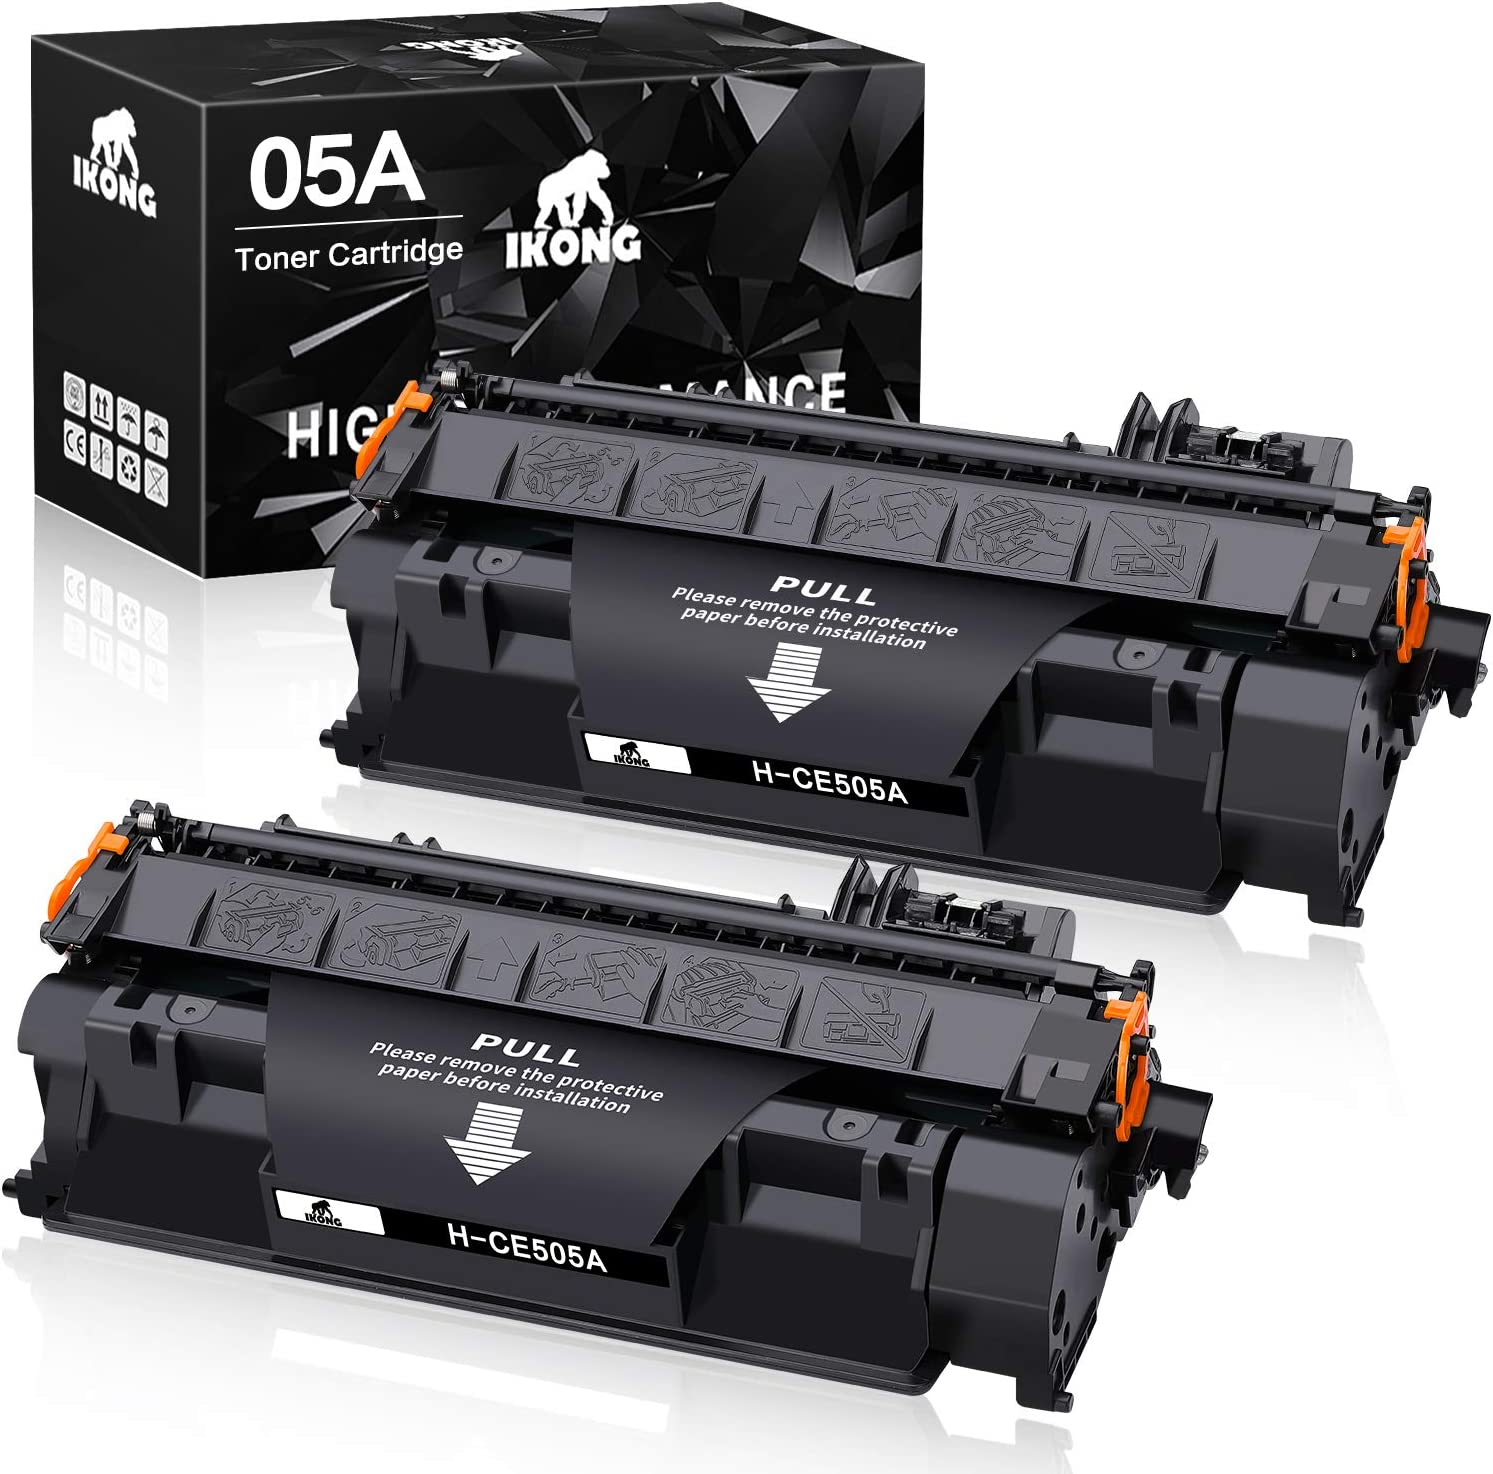 IKONG Compatible Replacement for HP 05A CE505A Toner Cartridge use with Laserjet P2035 P2035n P2055d P2055dn P2055x Printer (2-Black)